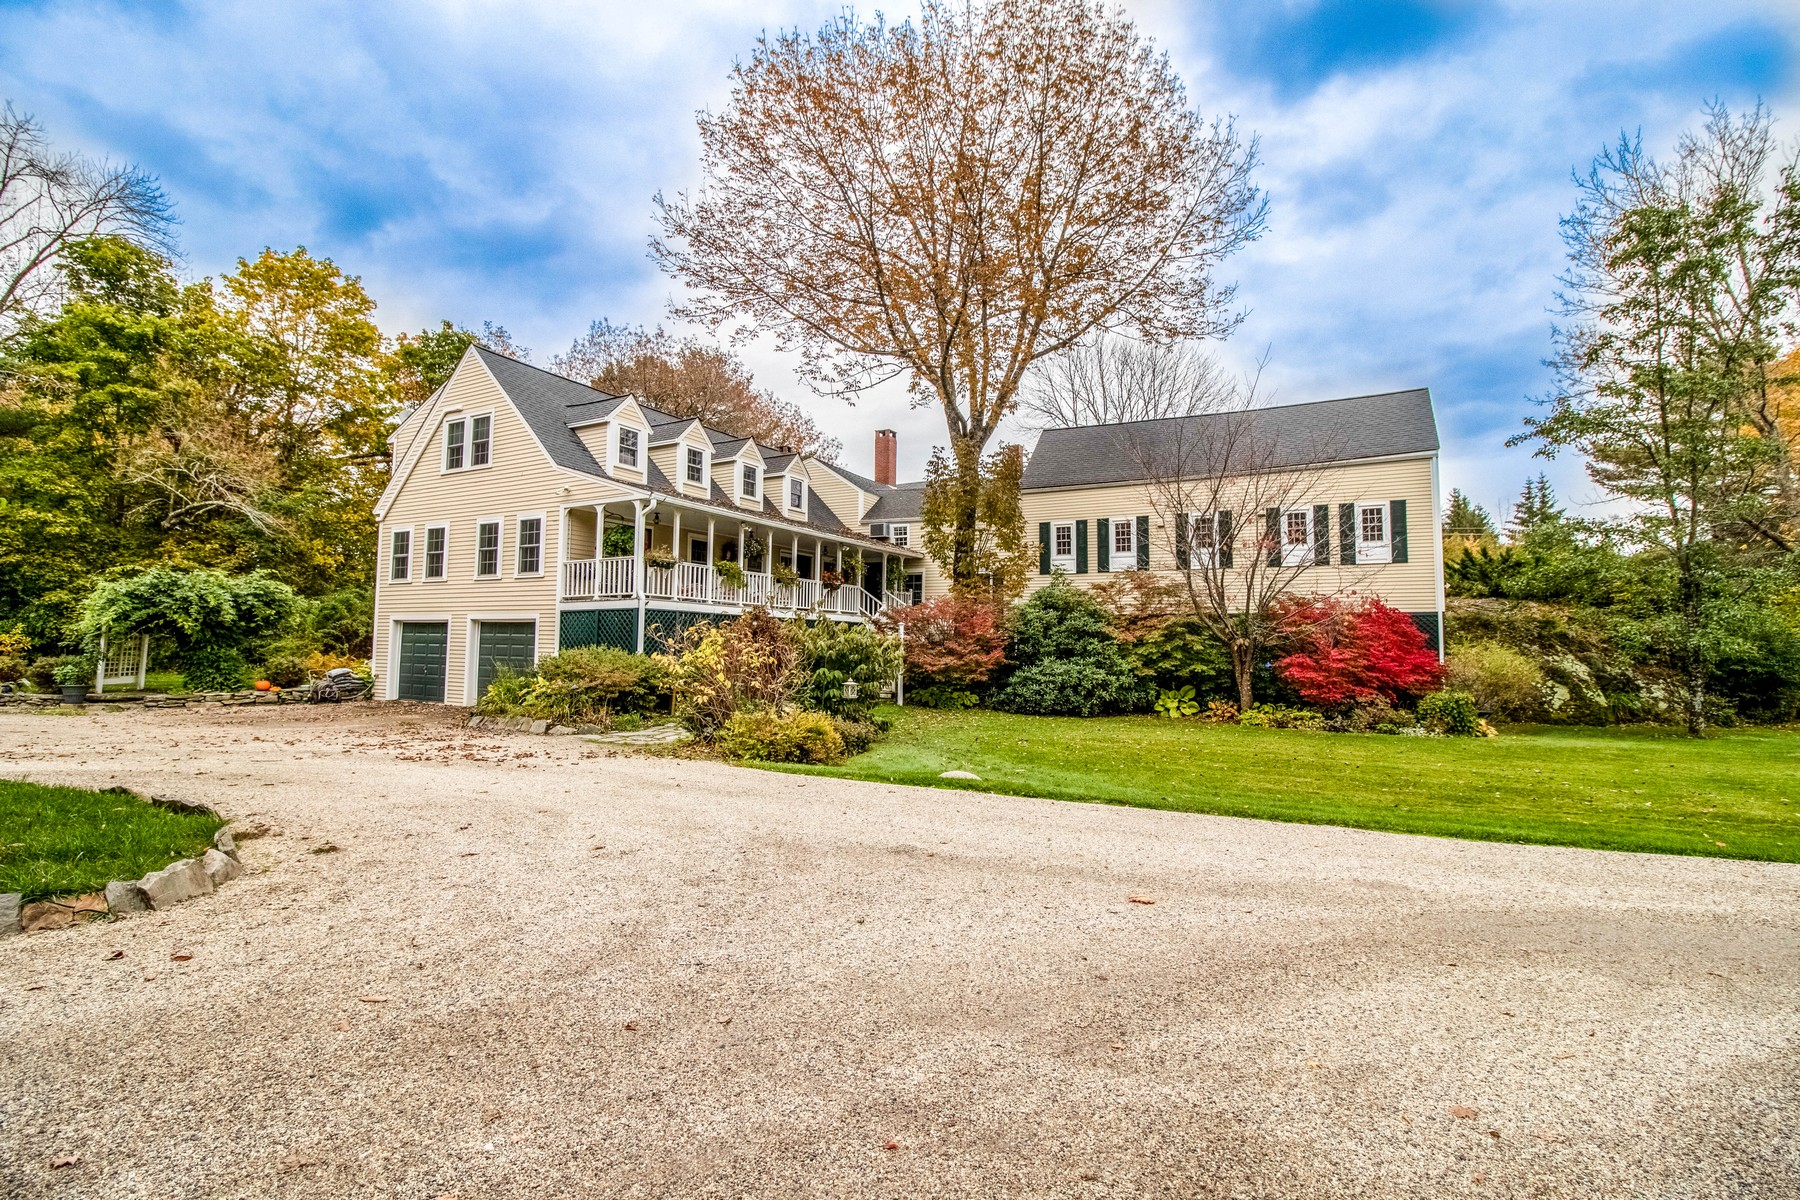 Bed and Breakfast Homes للـ Sale في Snow Squall Inn 5 Bradford Road, Wiscasset, Maine 04578 United States